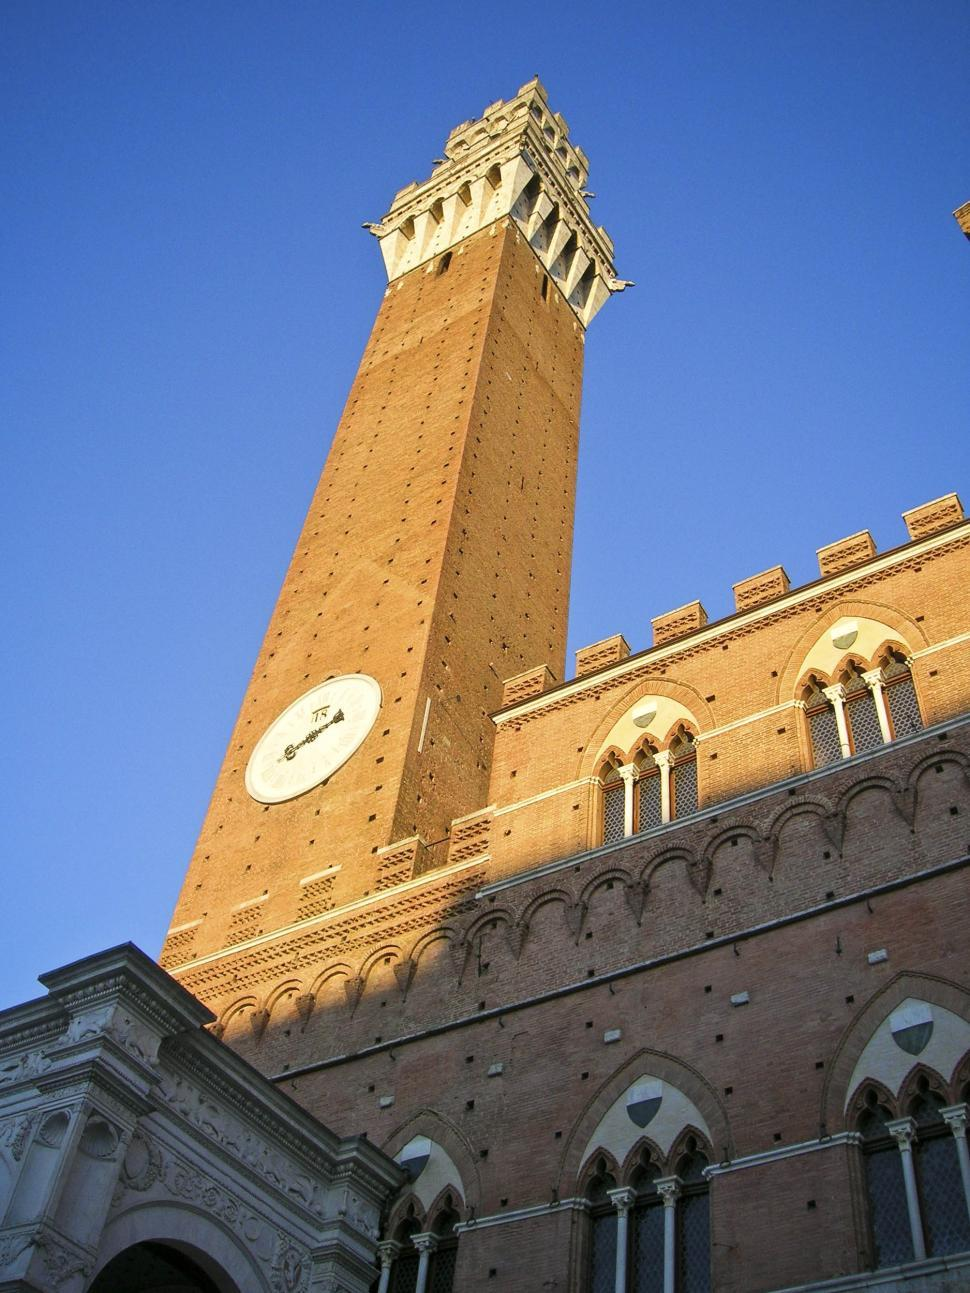 Download Free Stock Photo of Siena italy clock